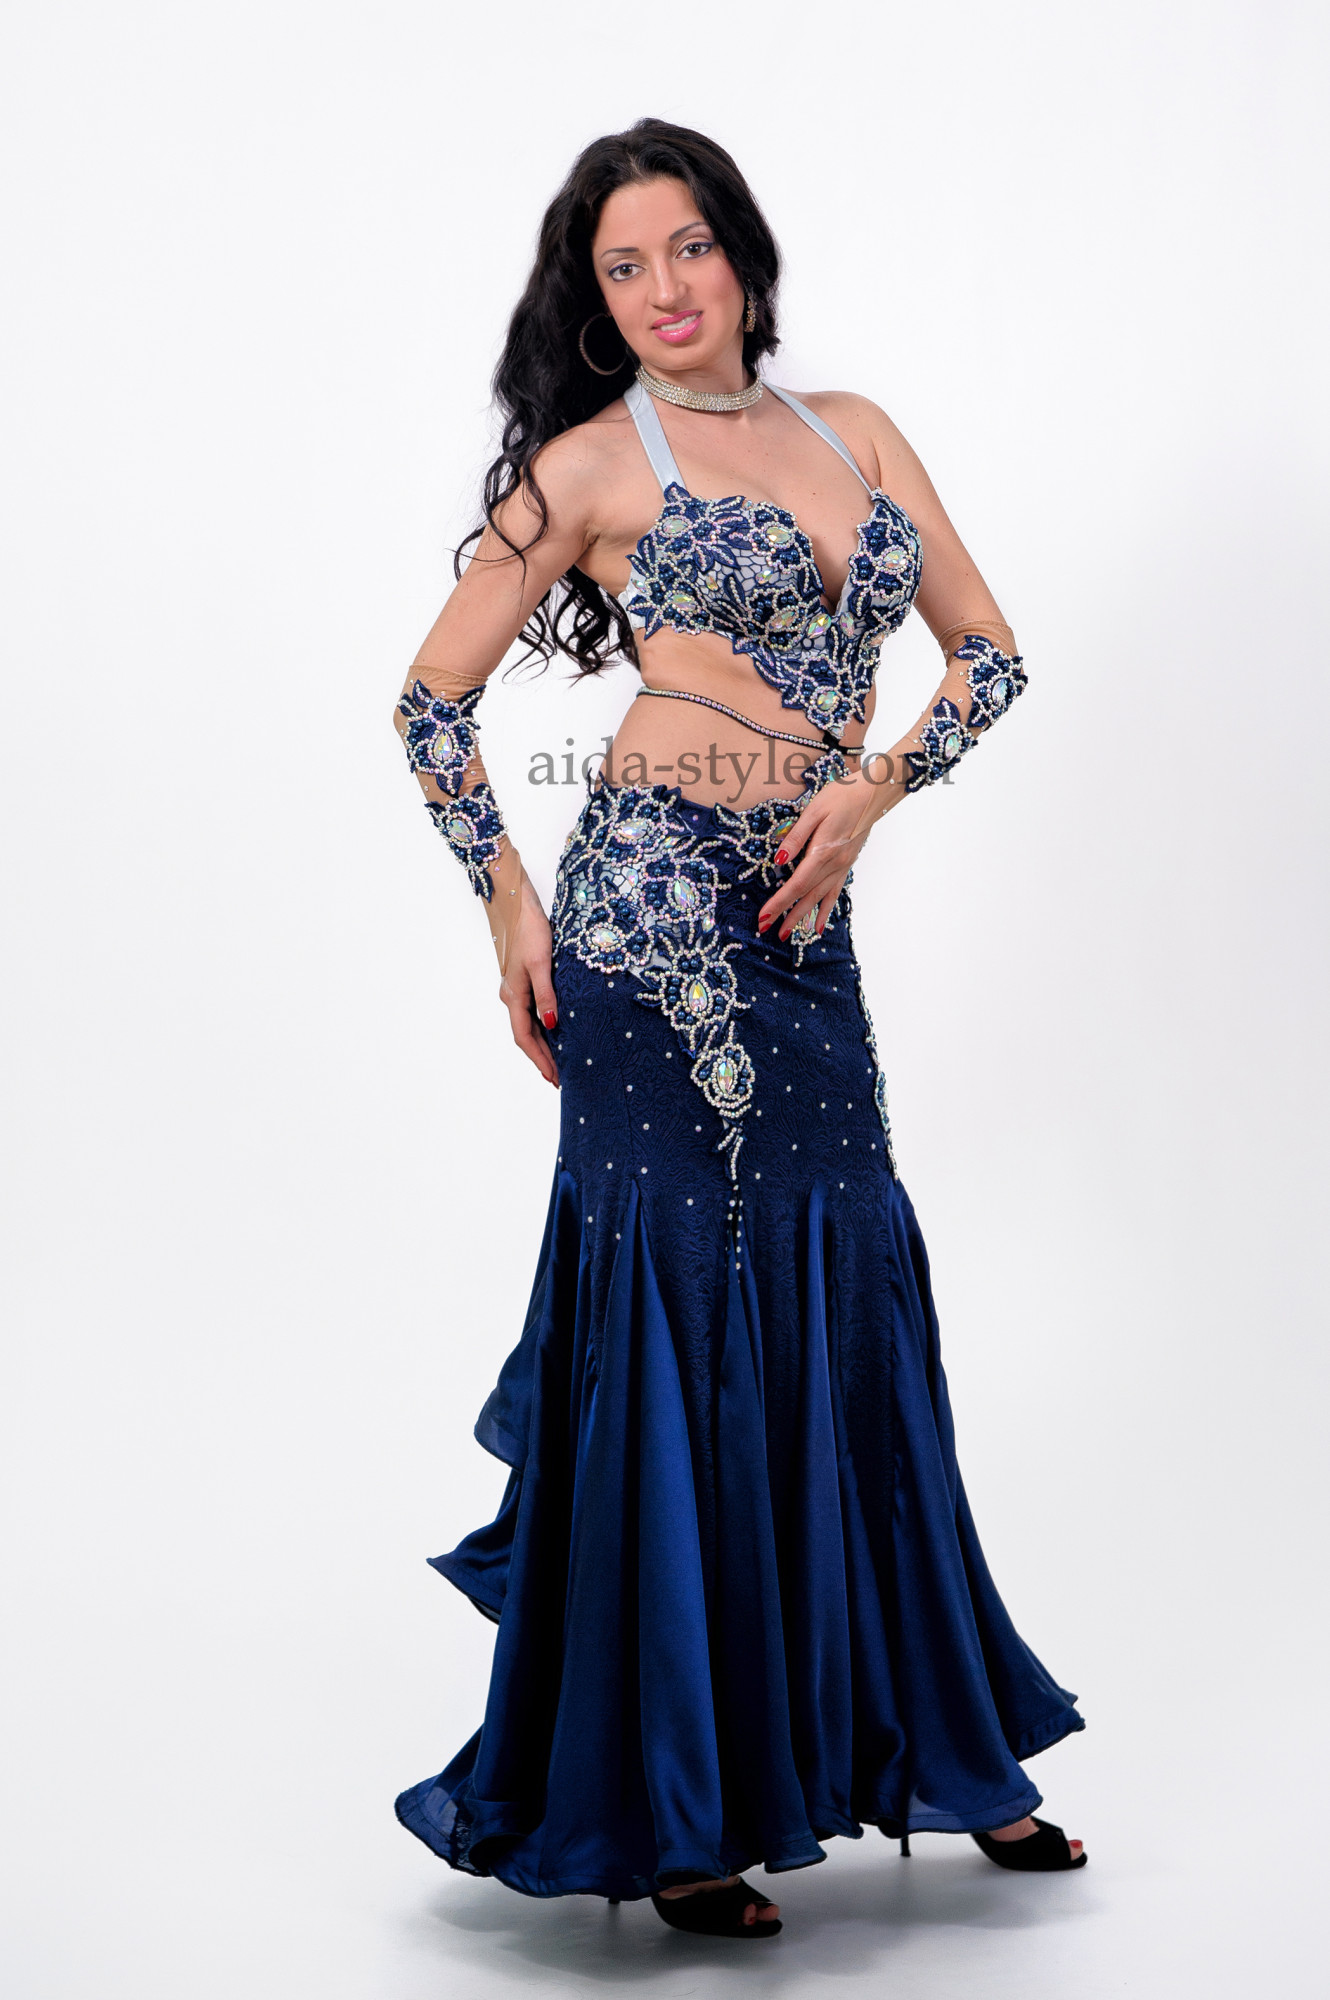 Professional belly dance dress with accessories for both hands. Skirt has flounces. Bra and hips are decorated with stones and flower patterns